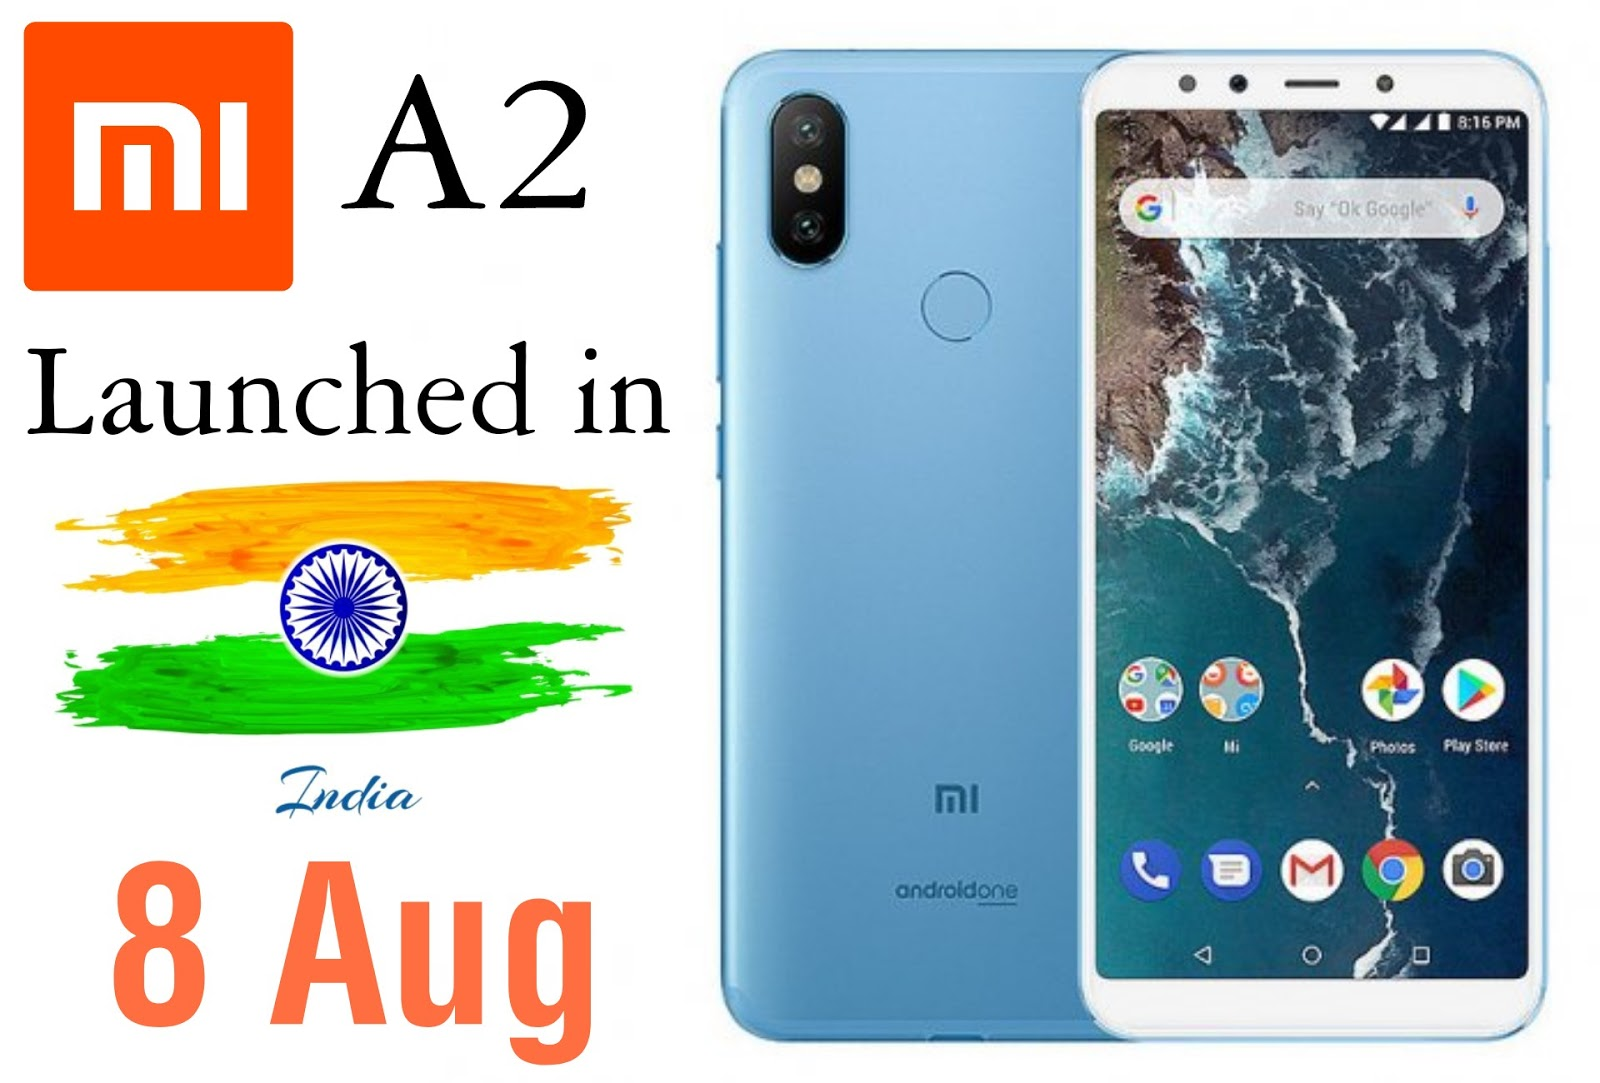 Mi A2 Launched in India, Mi A2 features and Price